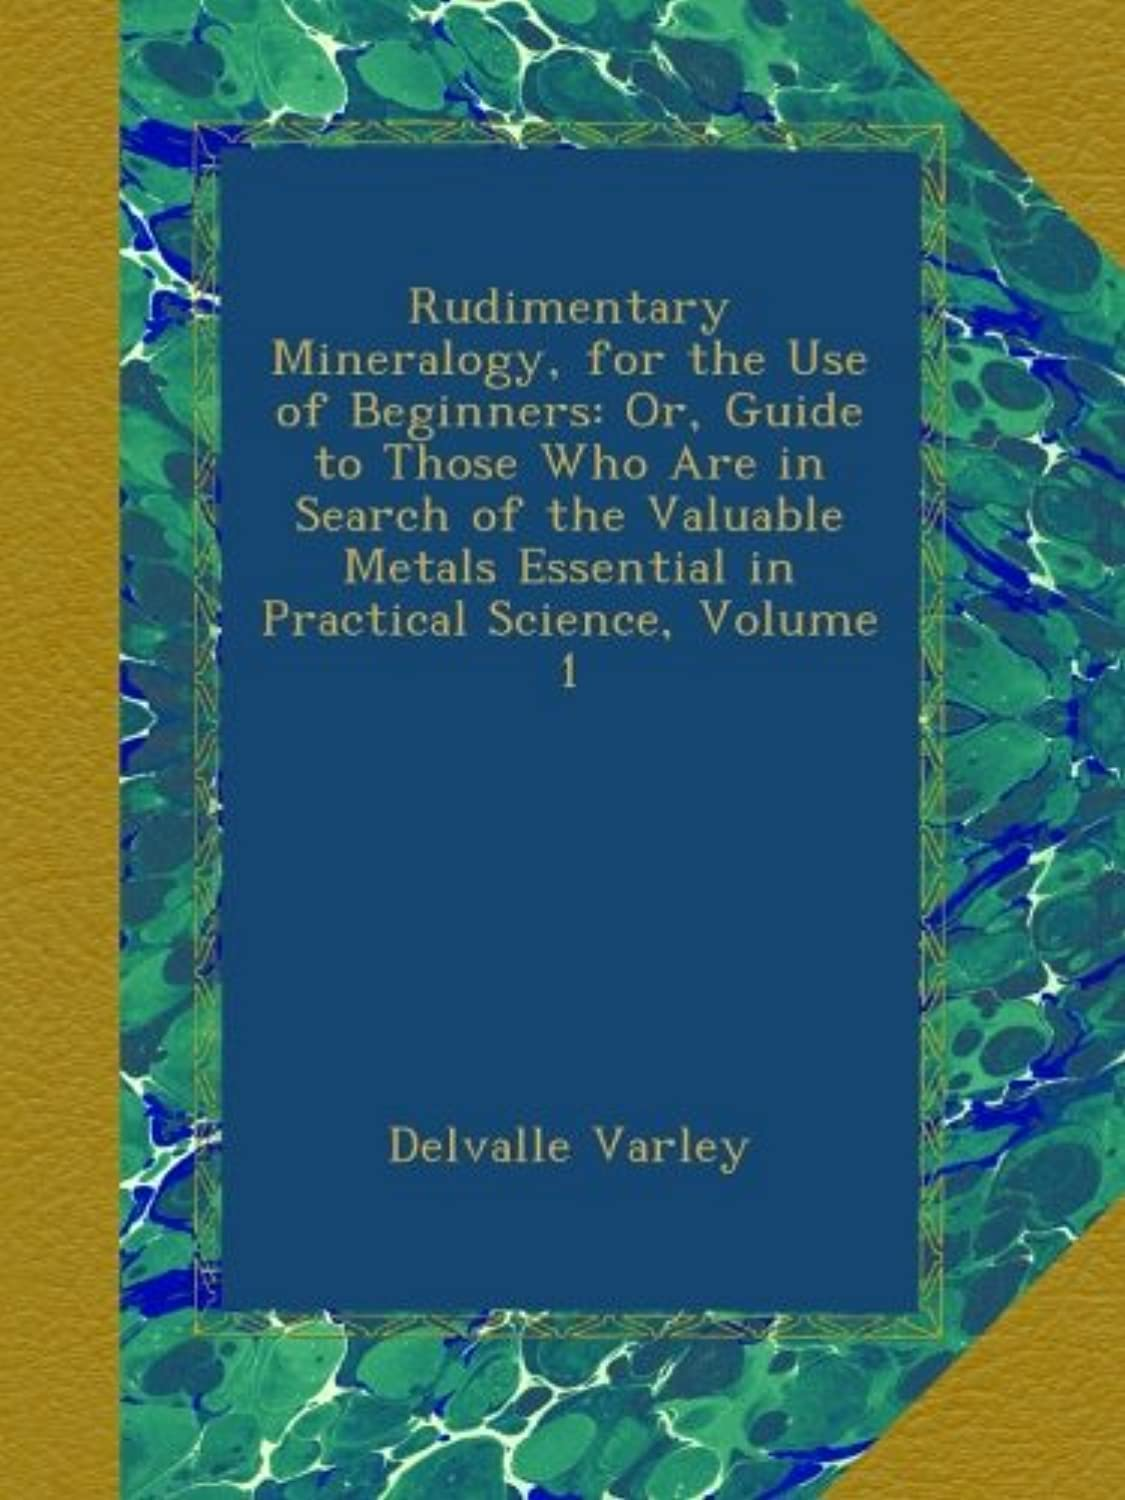 Rudimentary Mineralogy, for the Use of Beginners: Or, Guide to Those Who Are in Search of the Valuable Metals Essential in Practical Science, Volume 1